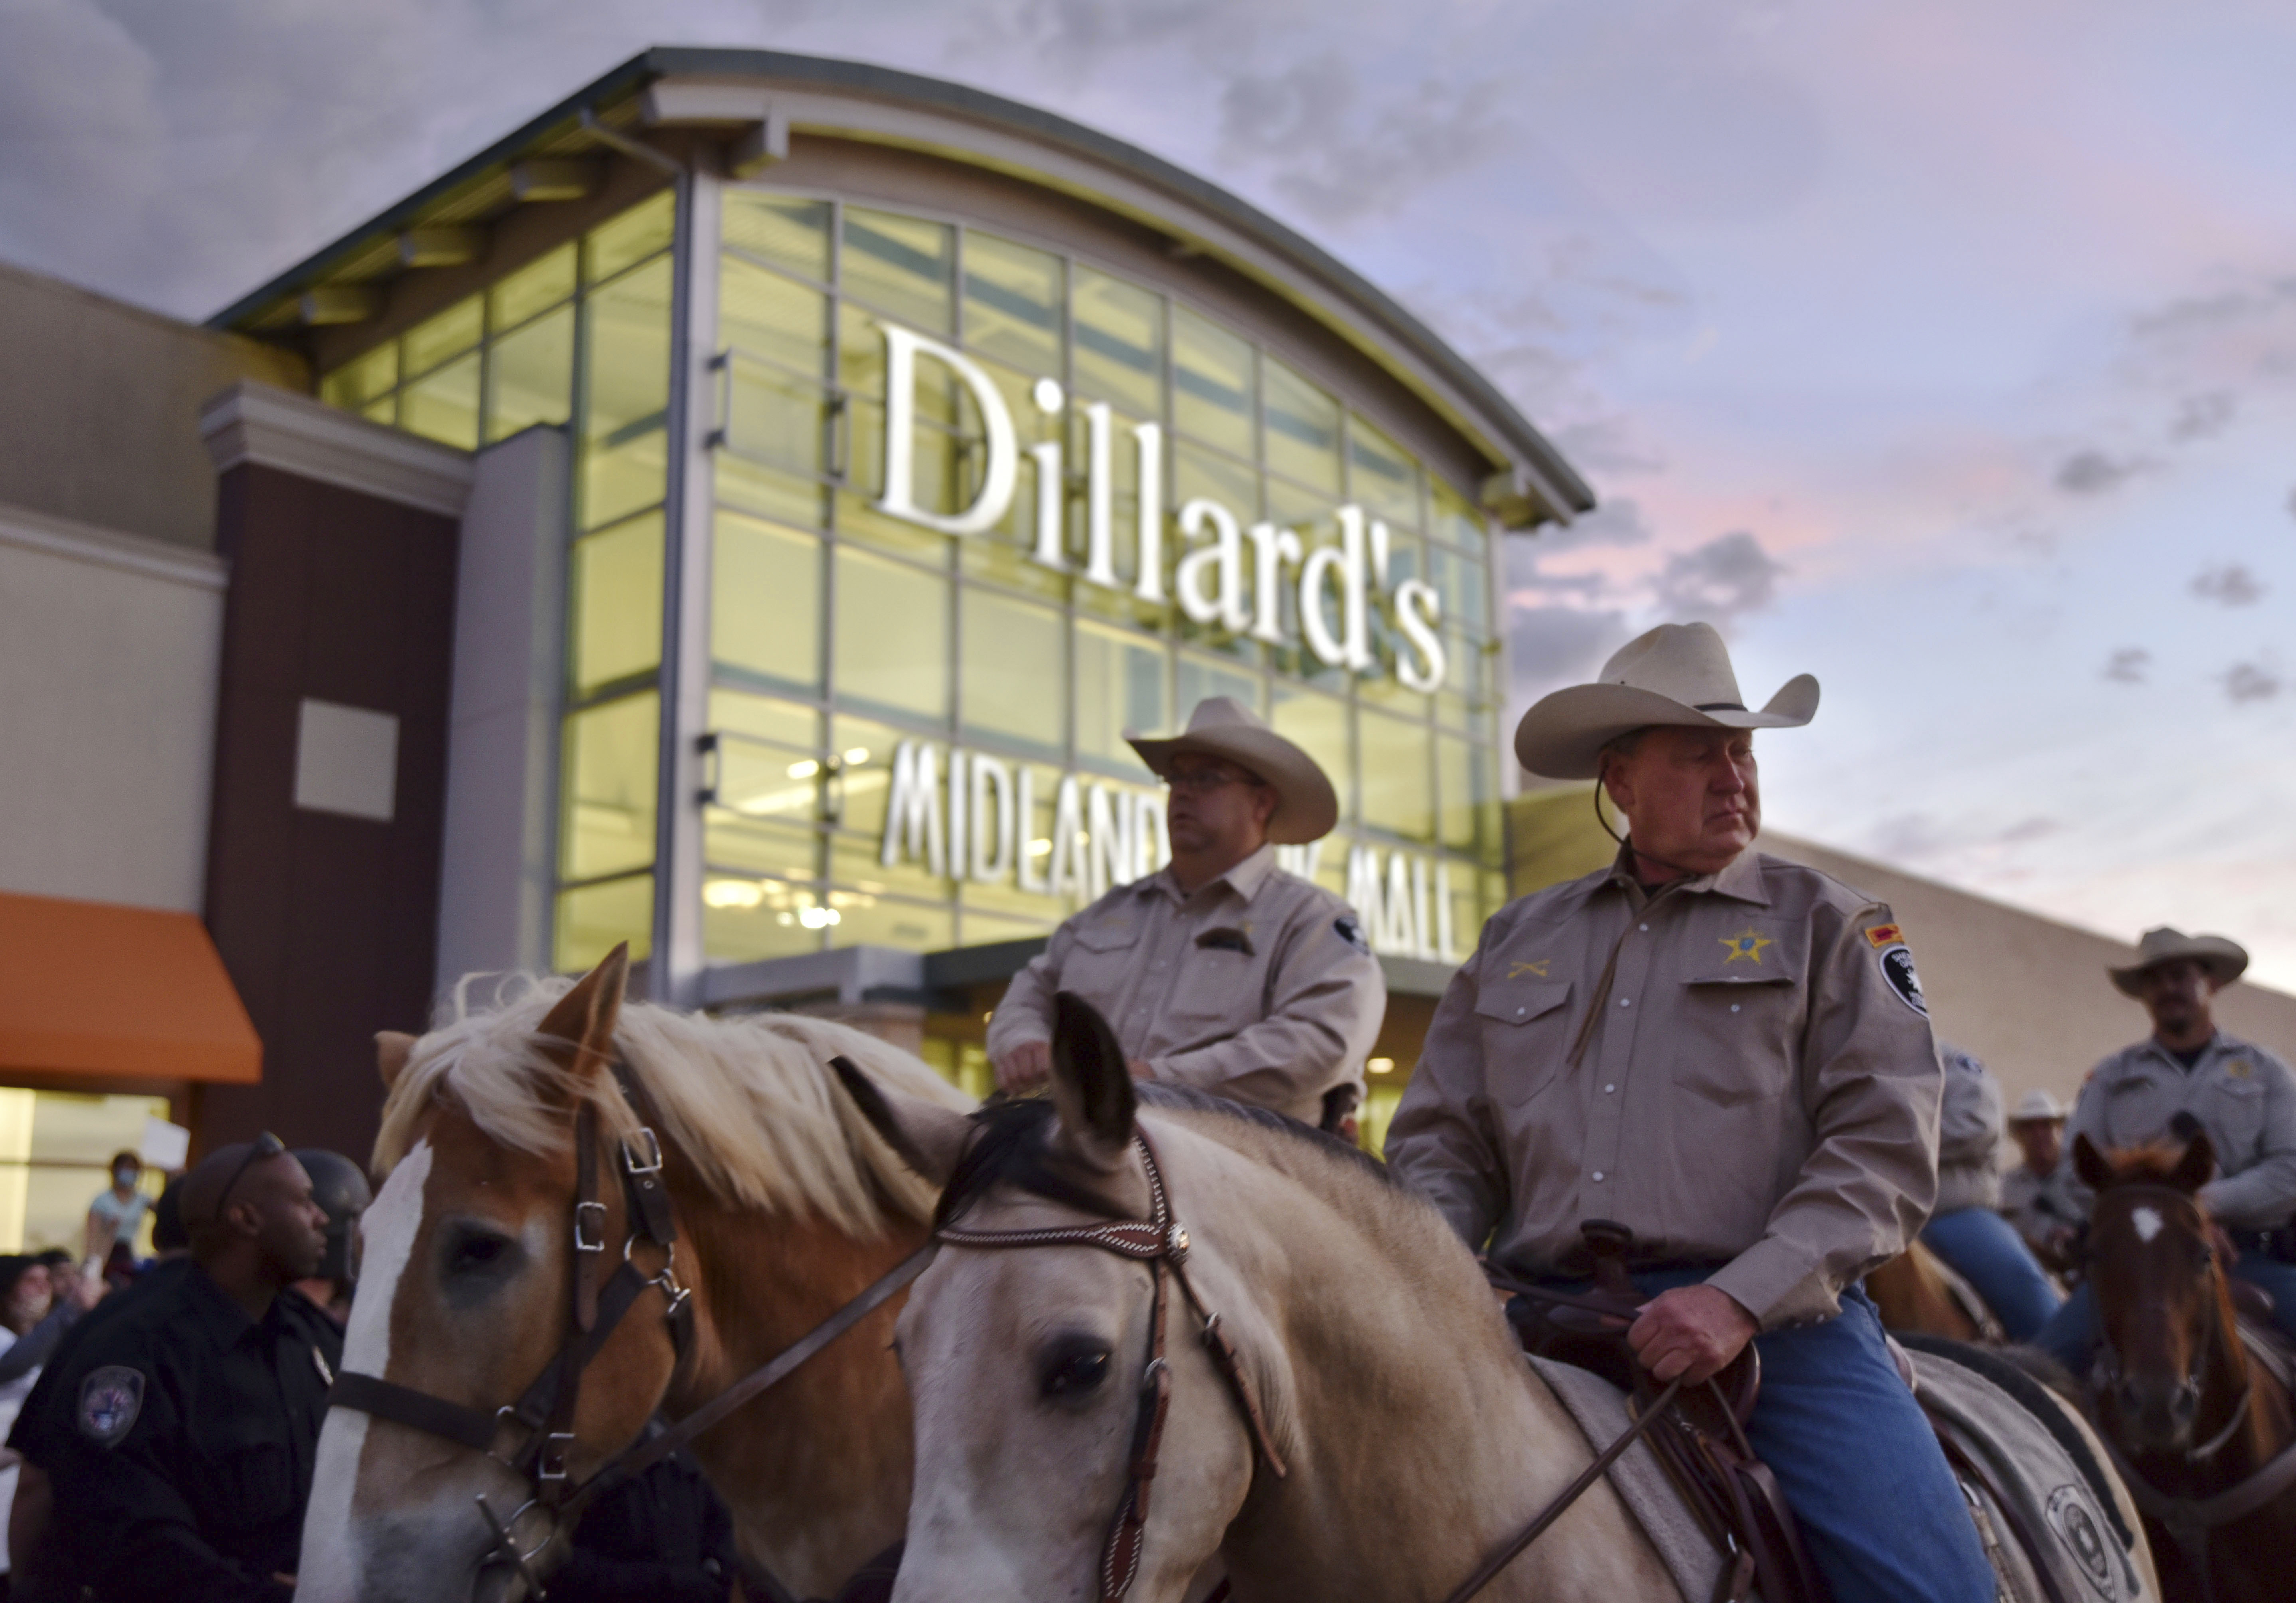 Mounted Midland County sheriff's deputies head through a crowd outside the Midland Park Mall while trying to disperse protesters during a Black Lives Matter demonstration in Midland, Texas, on Sunday, May 31, 2020, following the May 25 death of George Floyd, who was pinned at the neck by a Minneapolis police officer. (Eli Hartman/Odessa American via AP)